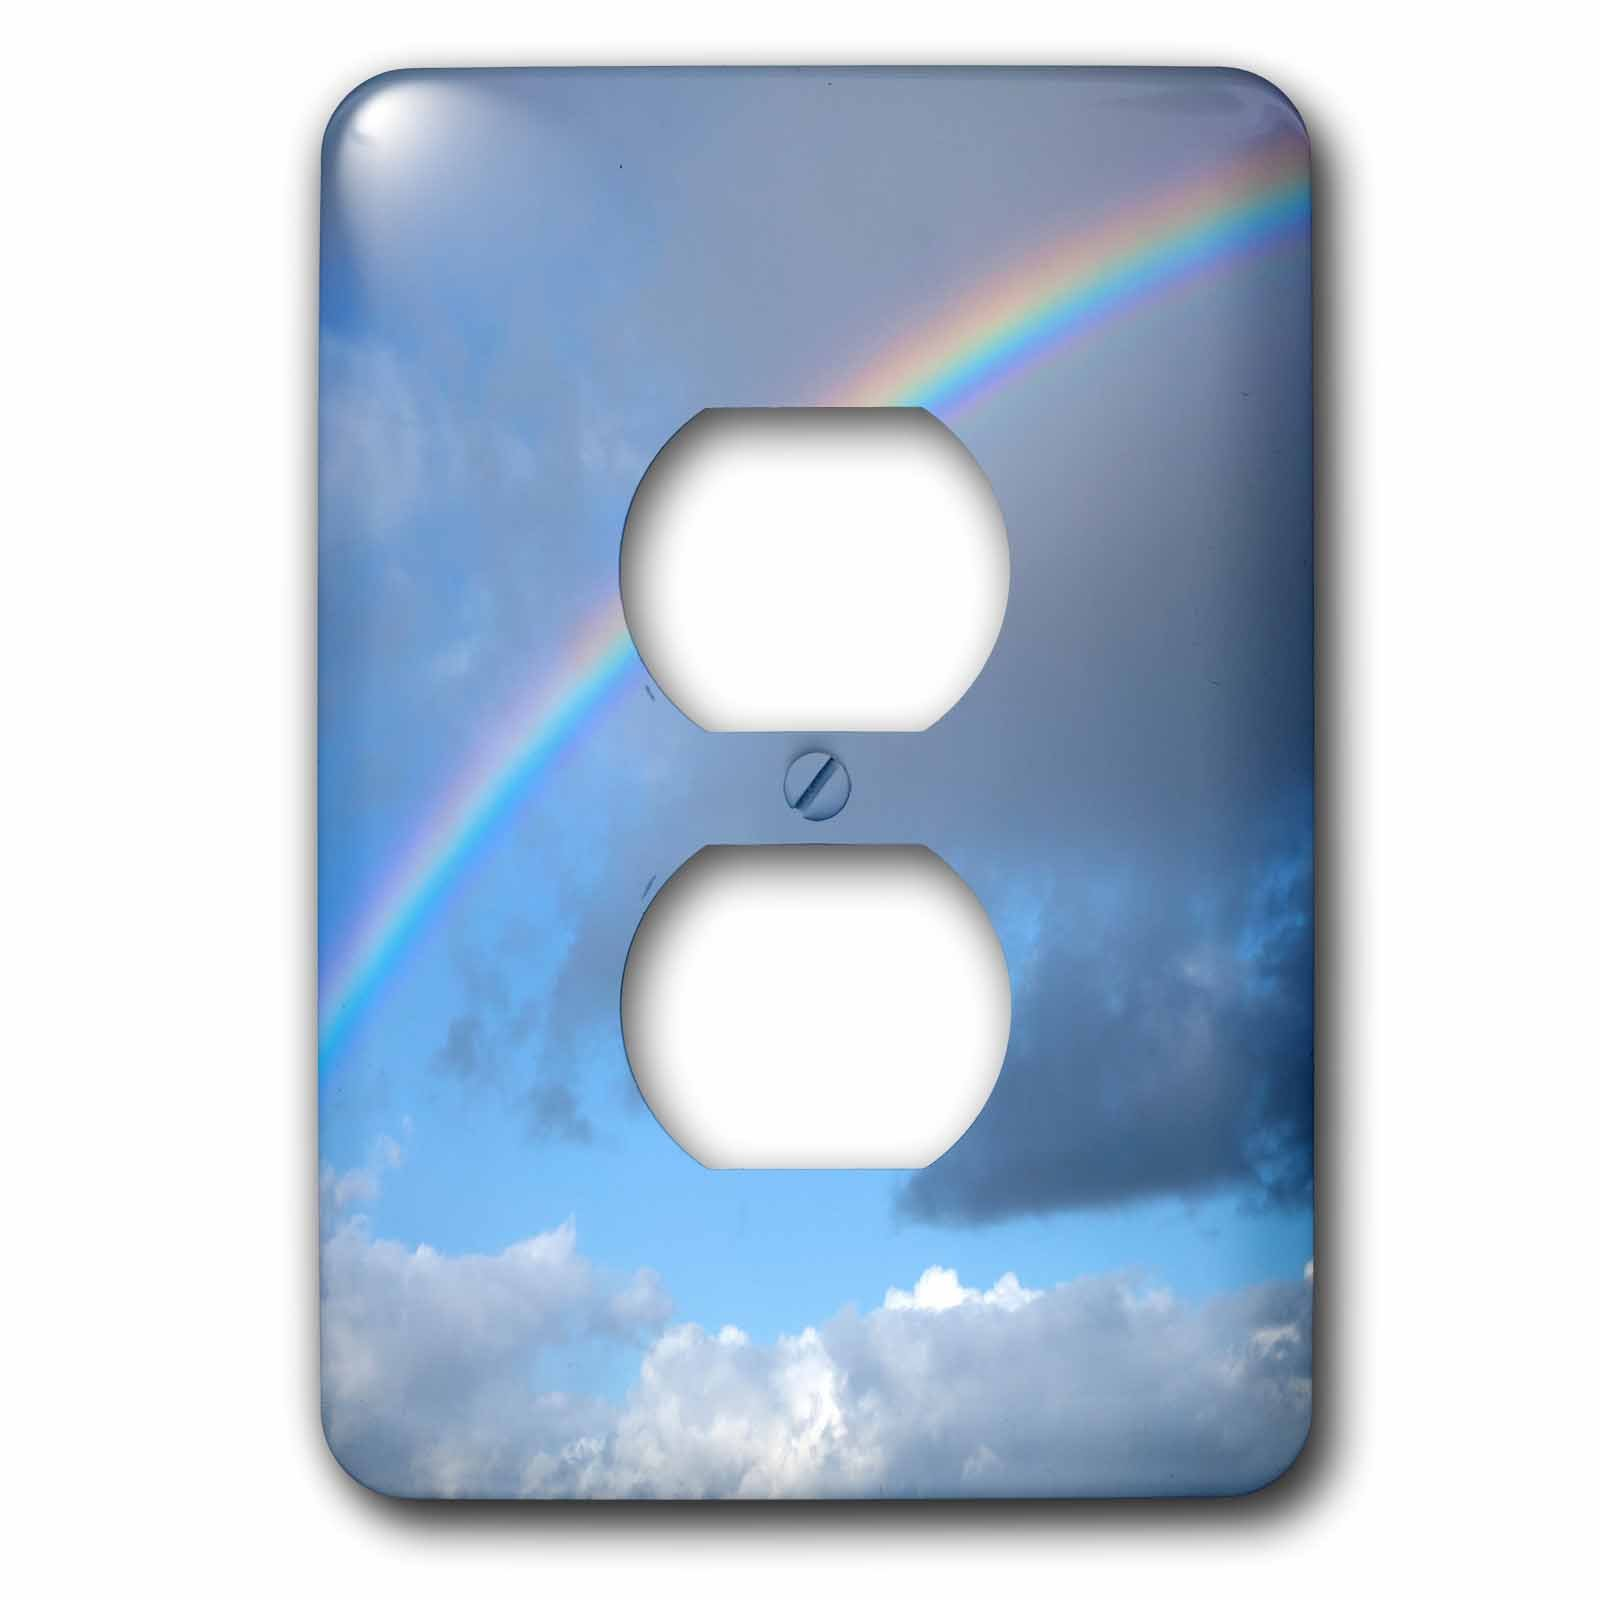 3dRose Danita Delimont - Rainbows - USA, California. Rainbow and clouds. - Light Switch Covers - 2 plug outlet cover (lsp_258840_6)